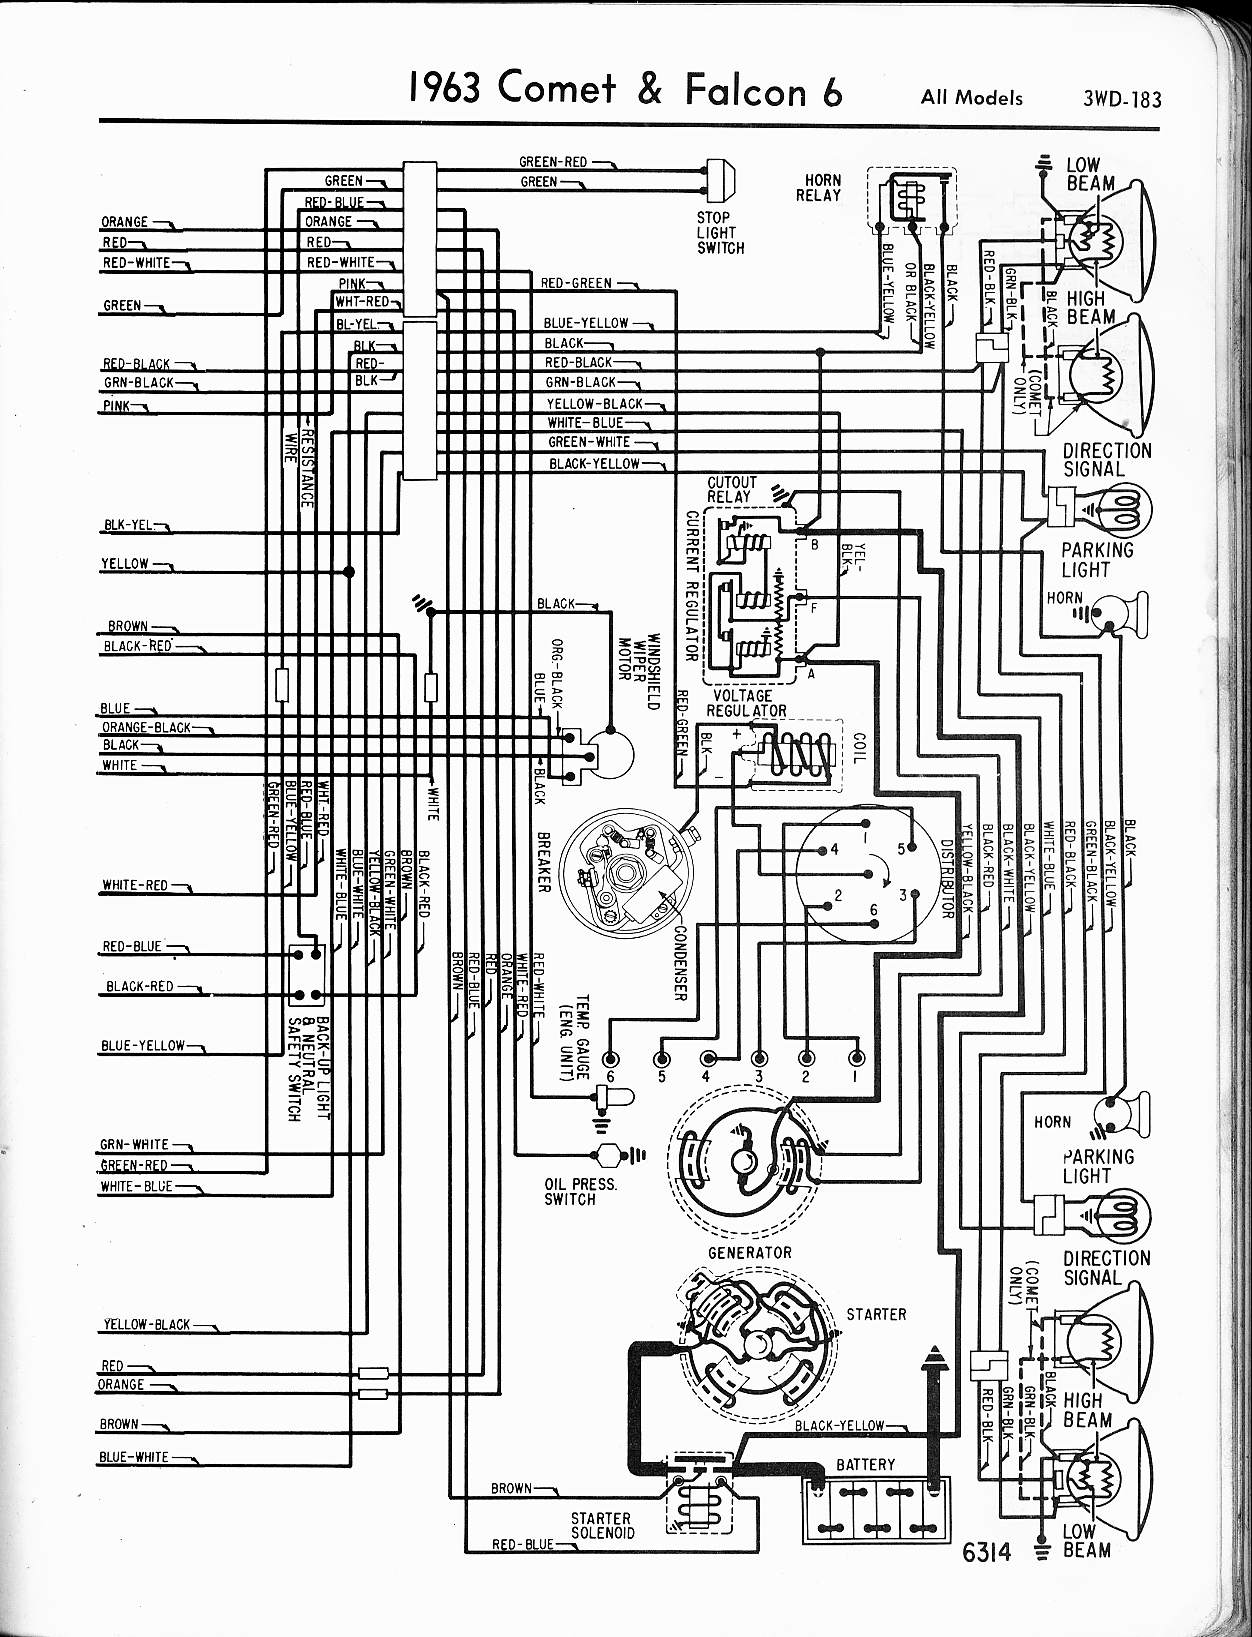 63 falcon wiring diagram fordforumsonline com 1963 ford falcon wiring harness at soozxer.org